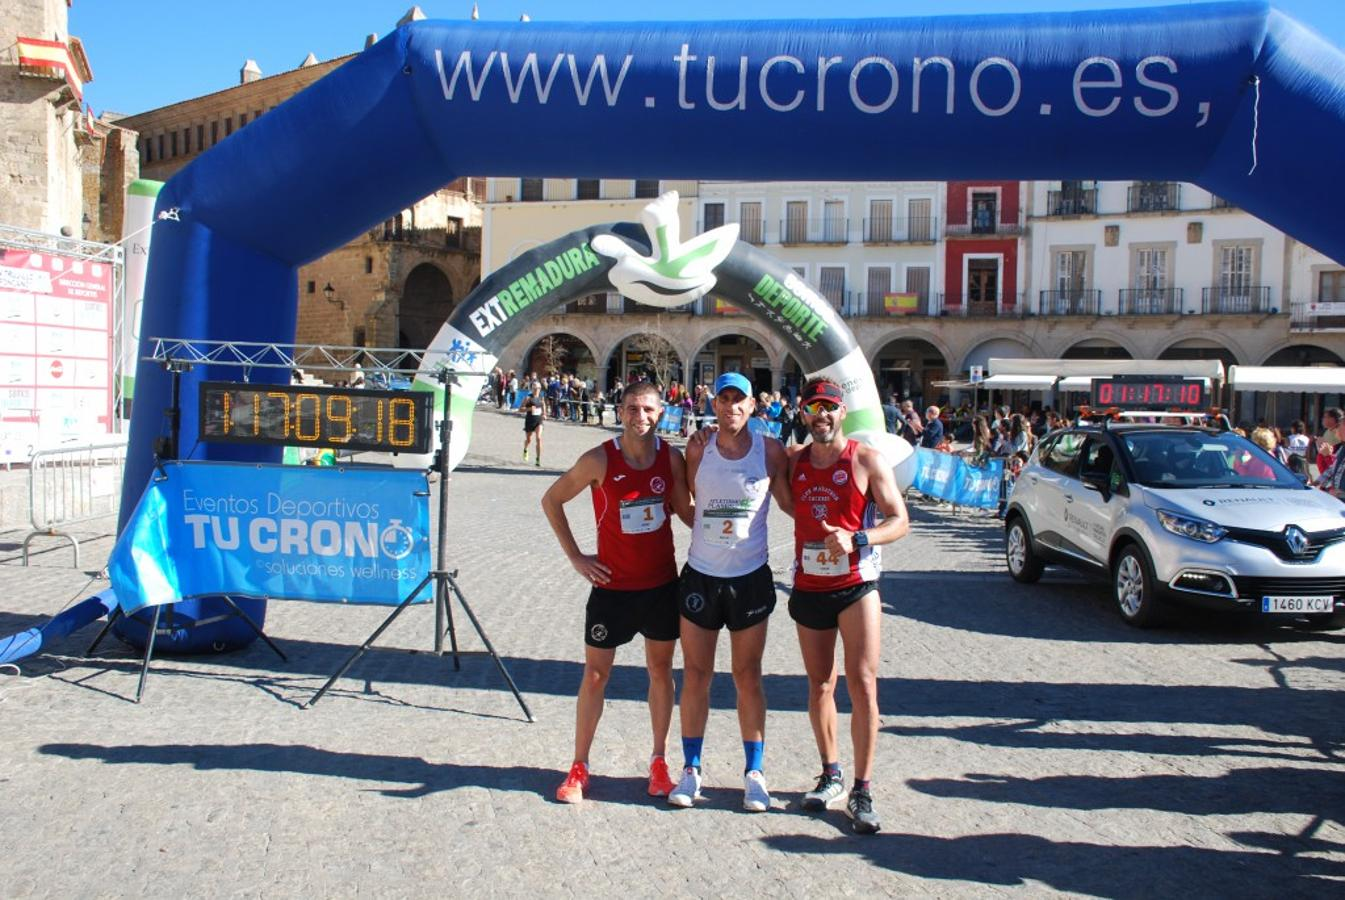 Media Maratón de Trujillo 2017 (II)